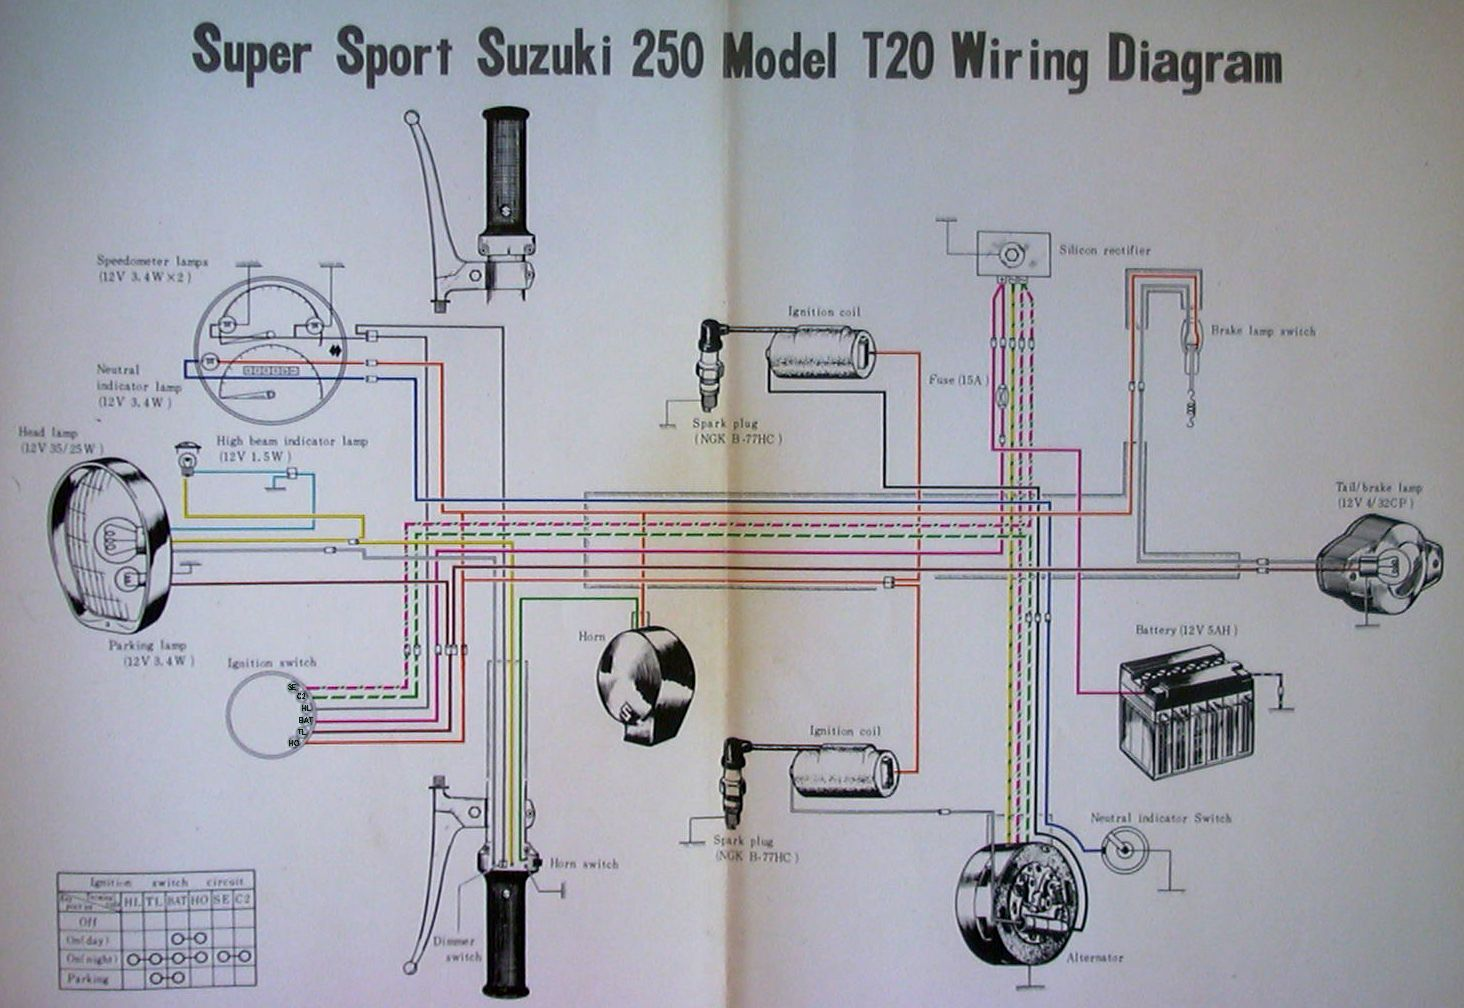 suzuki carry wiring diagram efcaviationcom leviton 2 way switch Wiring Diagrams 2001 Suzuki Esteem  Chopper Wiring Diagram Suzuki X90 Wiring Diagram Suzuki Grand Vitara Wiring-Diagram